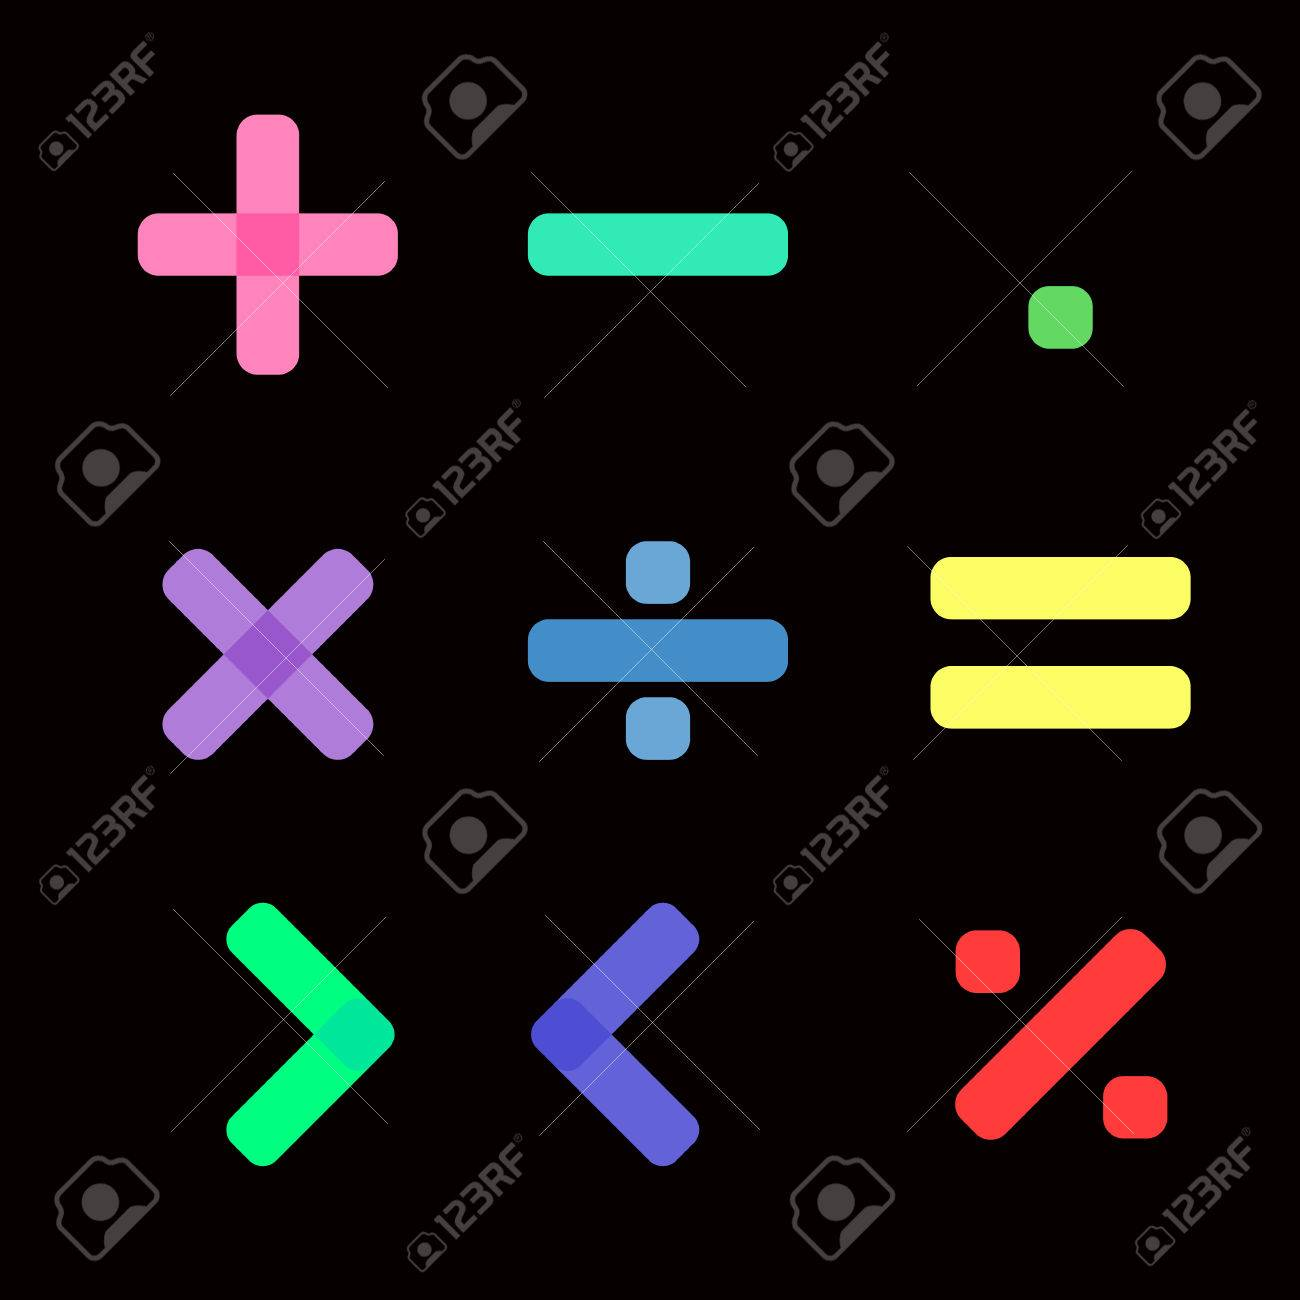 Math symbol in black background royalty free cliparts vectors math symbol in black background stock vector 53535122 biocorpaavc Gallery